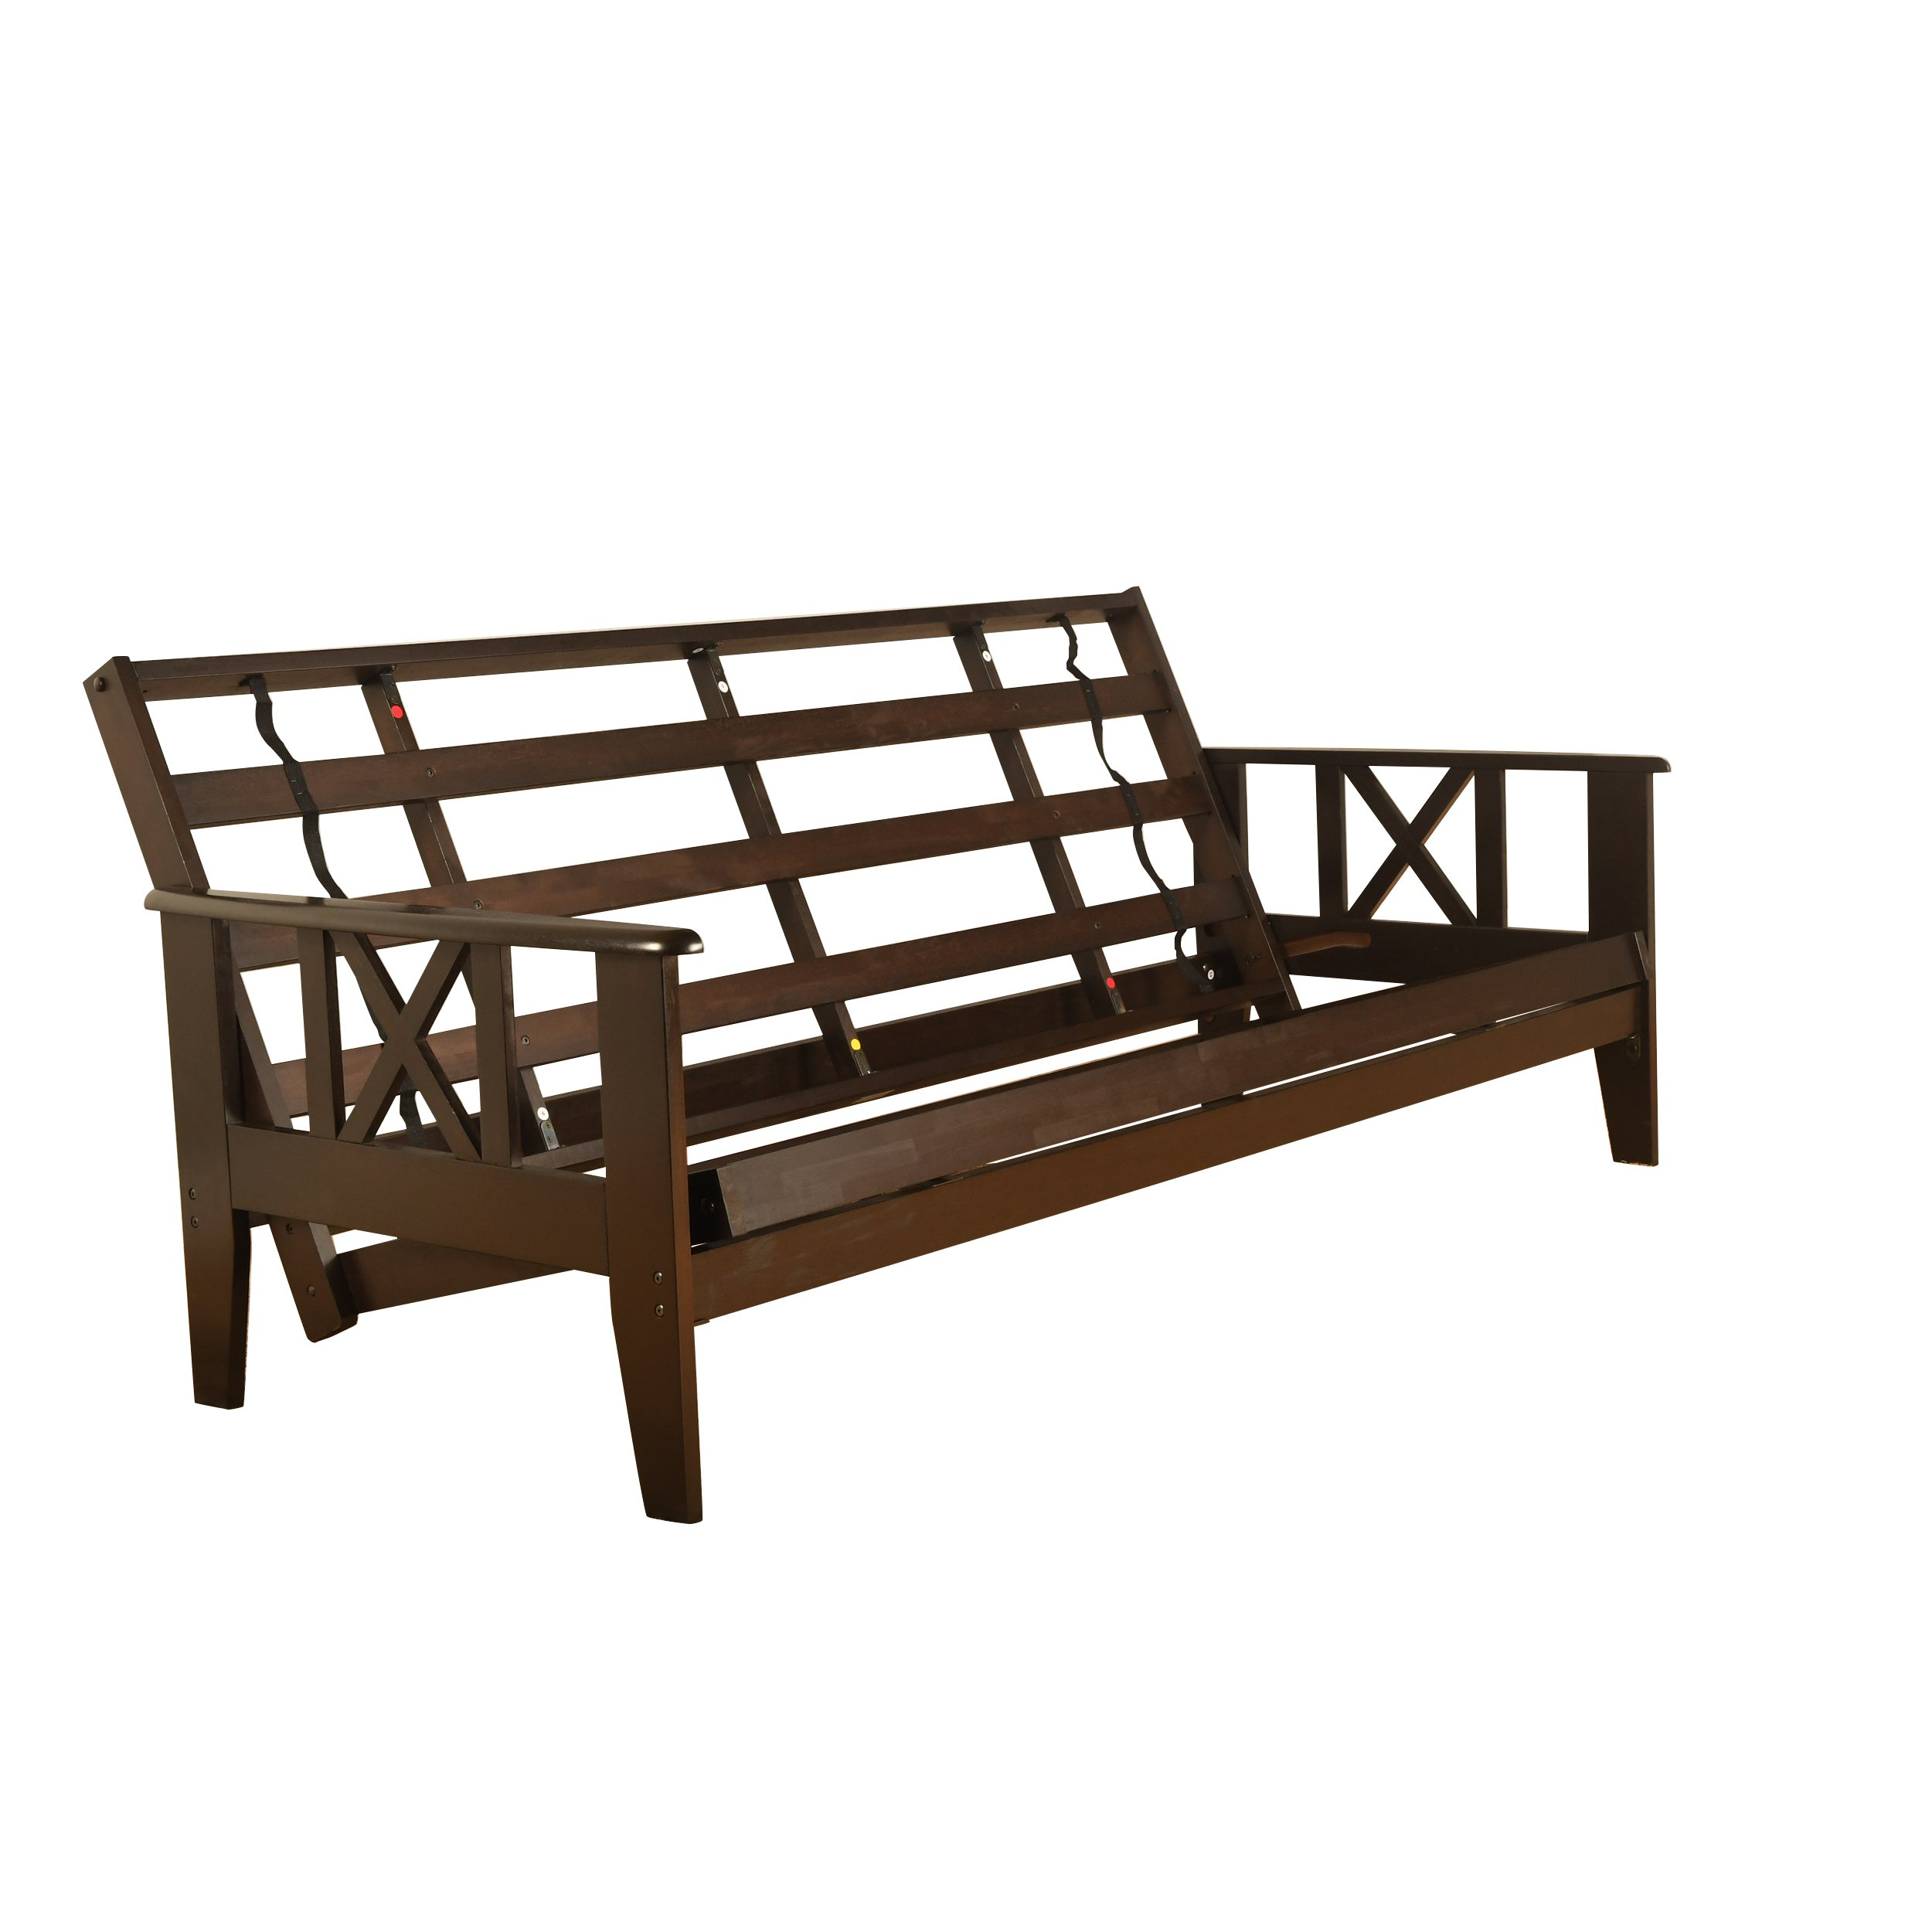 RawFuton Excelsior Espresso Futon Frame |x| - Choose Full or Queen or Full w/Drawers (Queen) by RawFuton